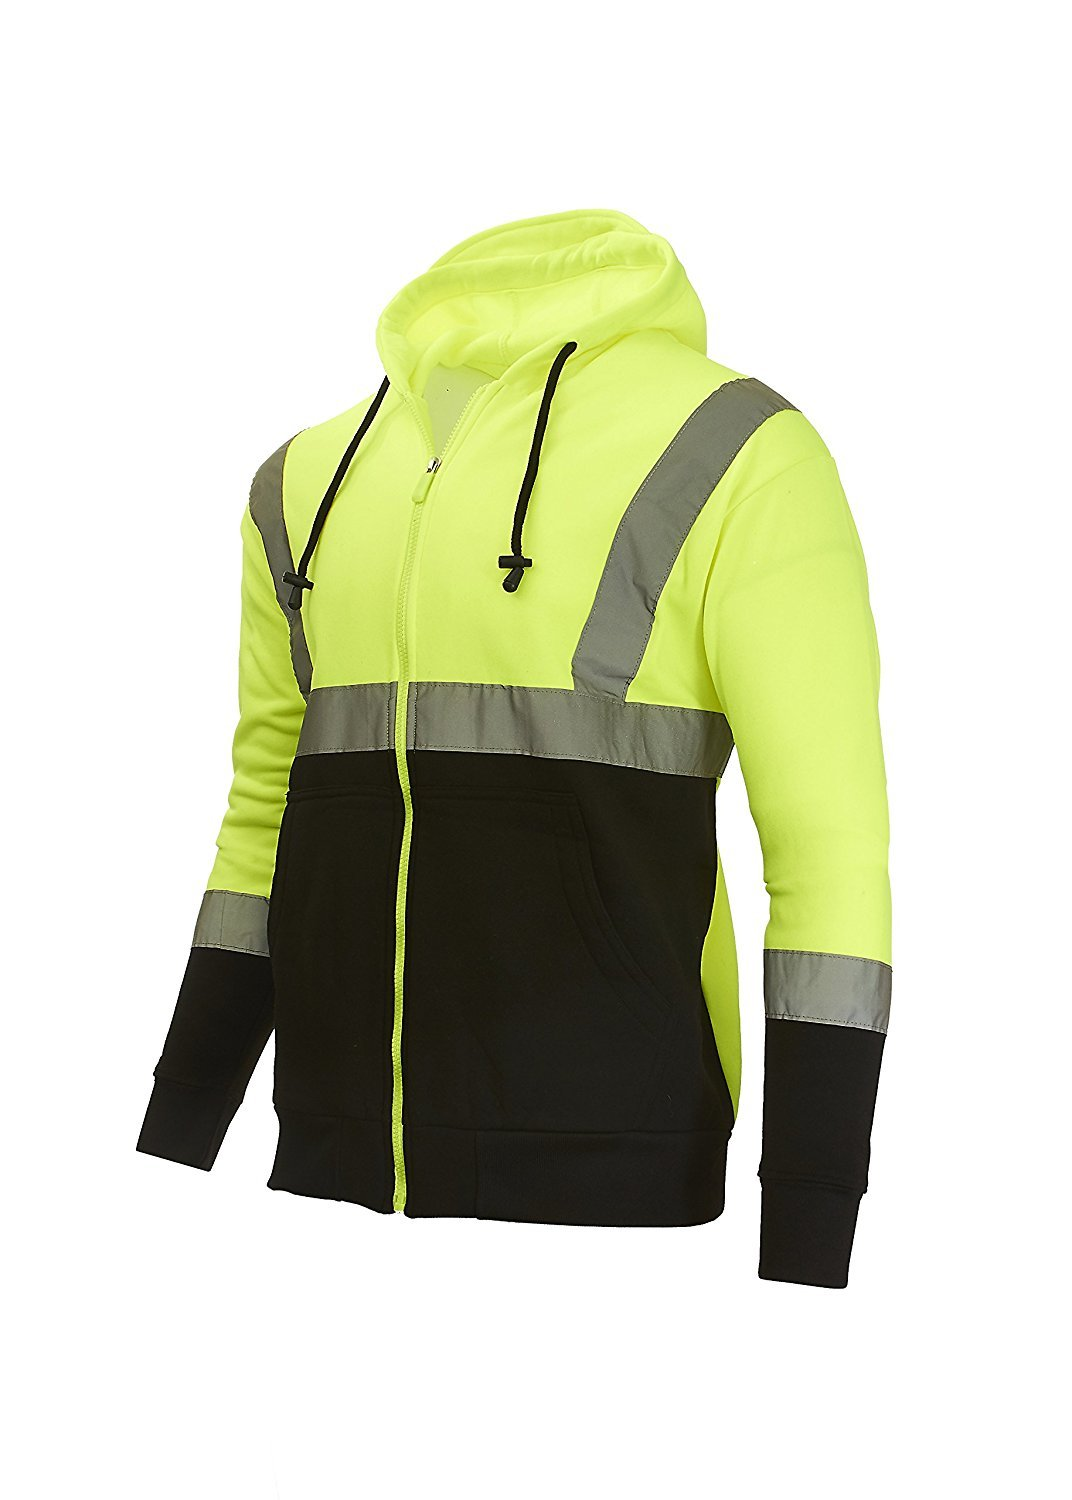 Arctic Quest Mens Fleece Full Zip Hoodie Safety Sweatshirt Reflective Detail Safety Yellow/Black Large